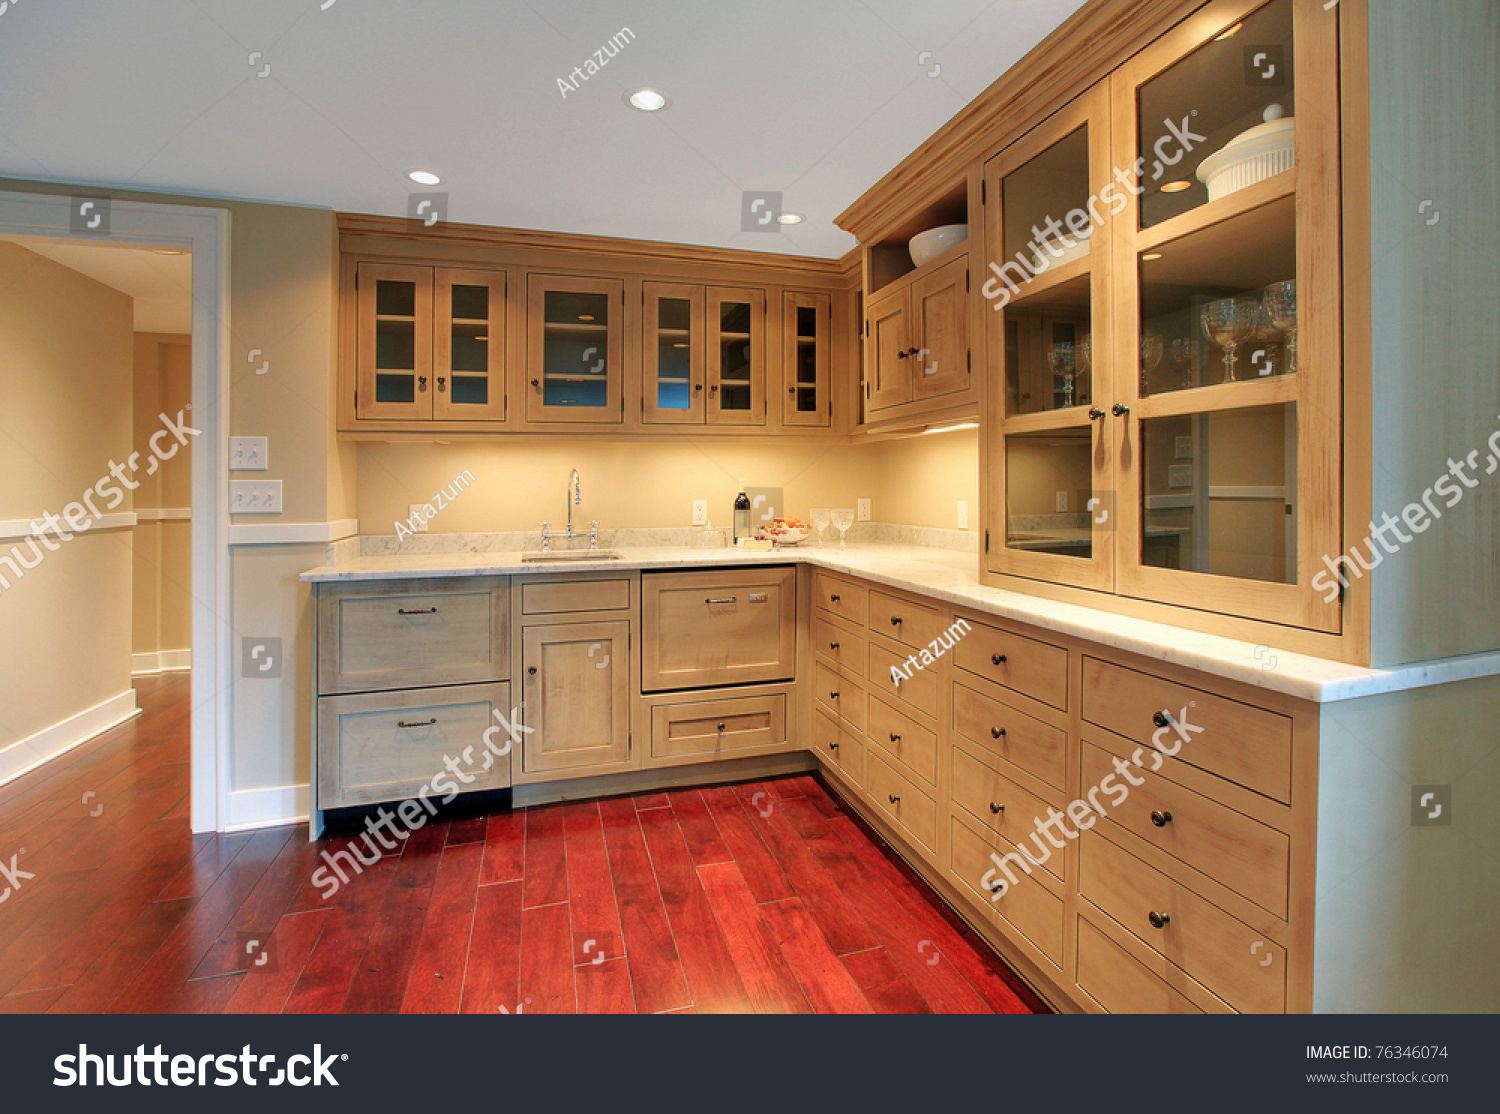 Good Luxury Custom Build Small Kitchen In The Basement Room For With Small Kitchen  In Basement